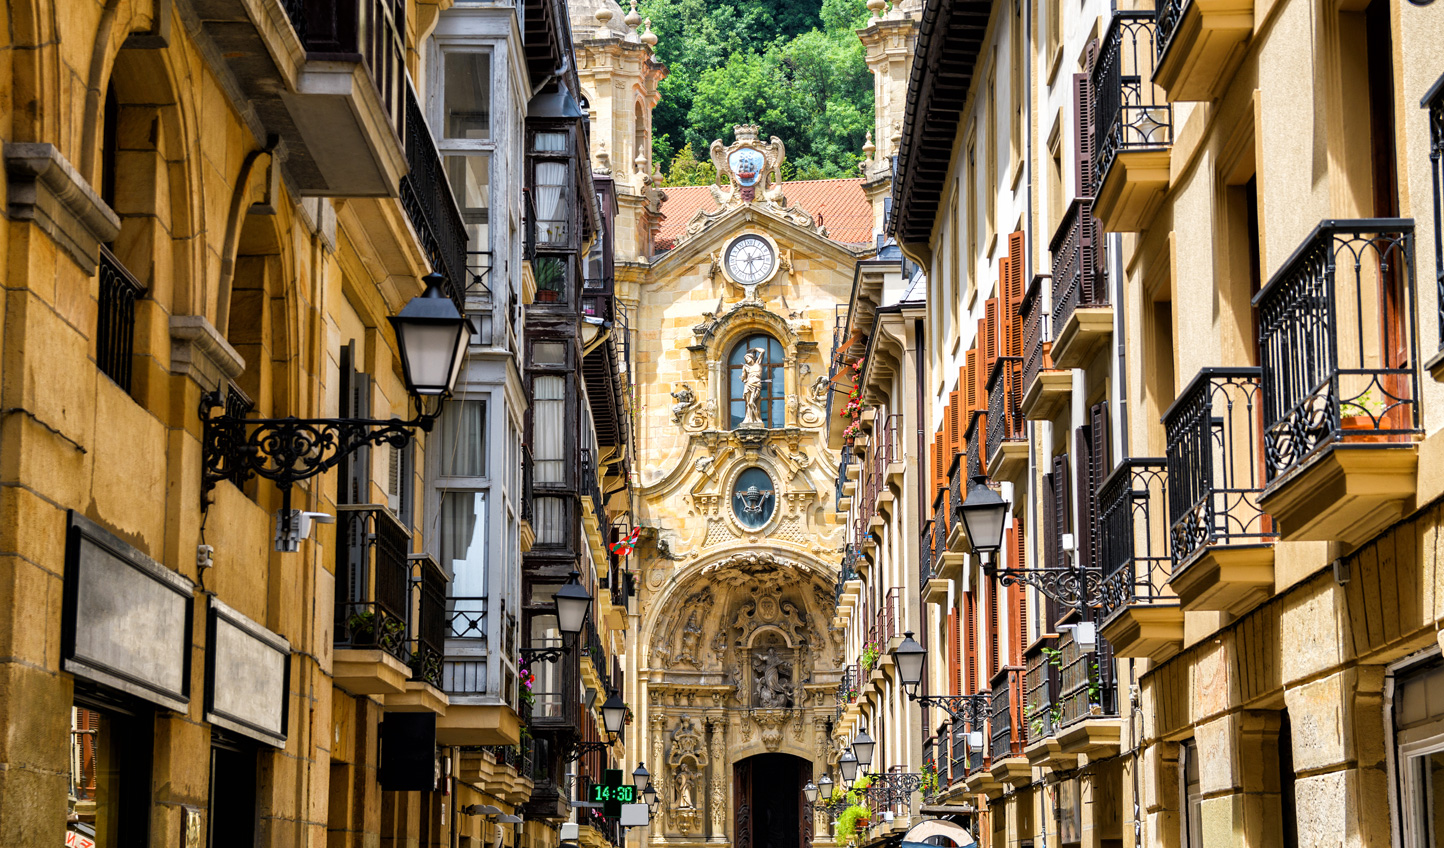 Stroll through San Sebastian's Old Town